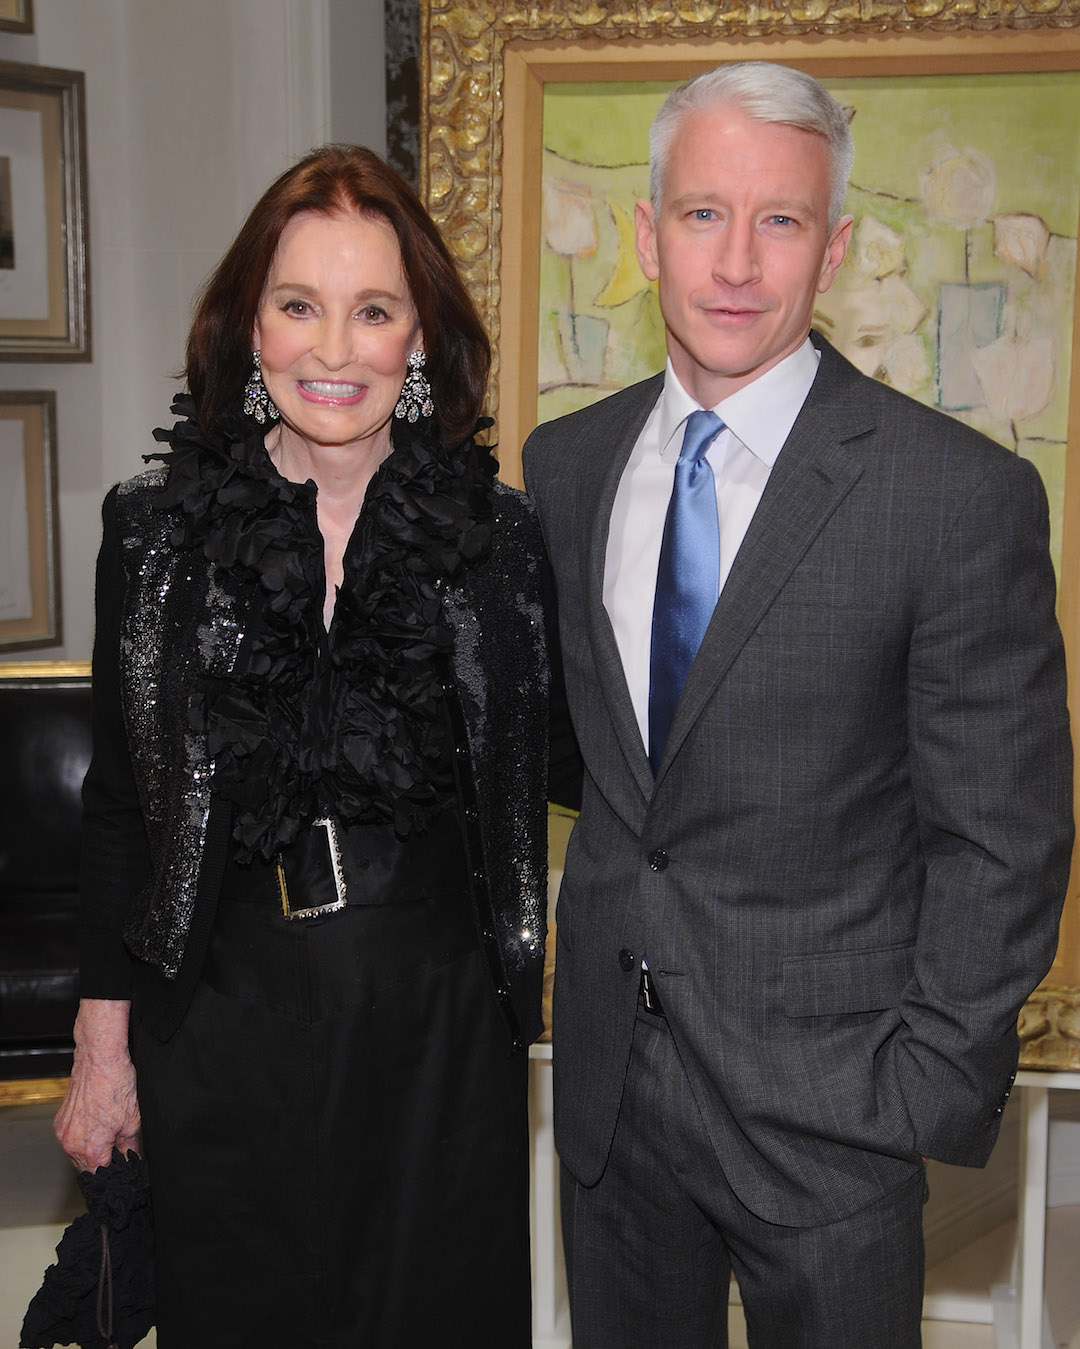 Gloria Vanderbilt, Style Icon and Mother of Anderson Cooper, Dies at 95